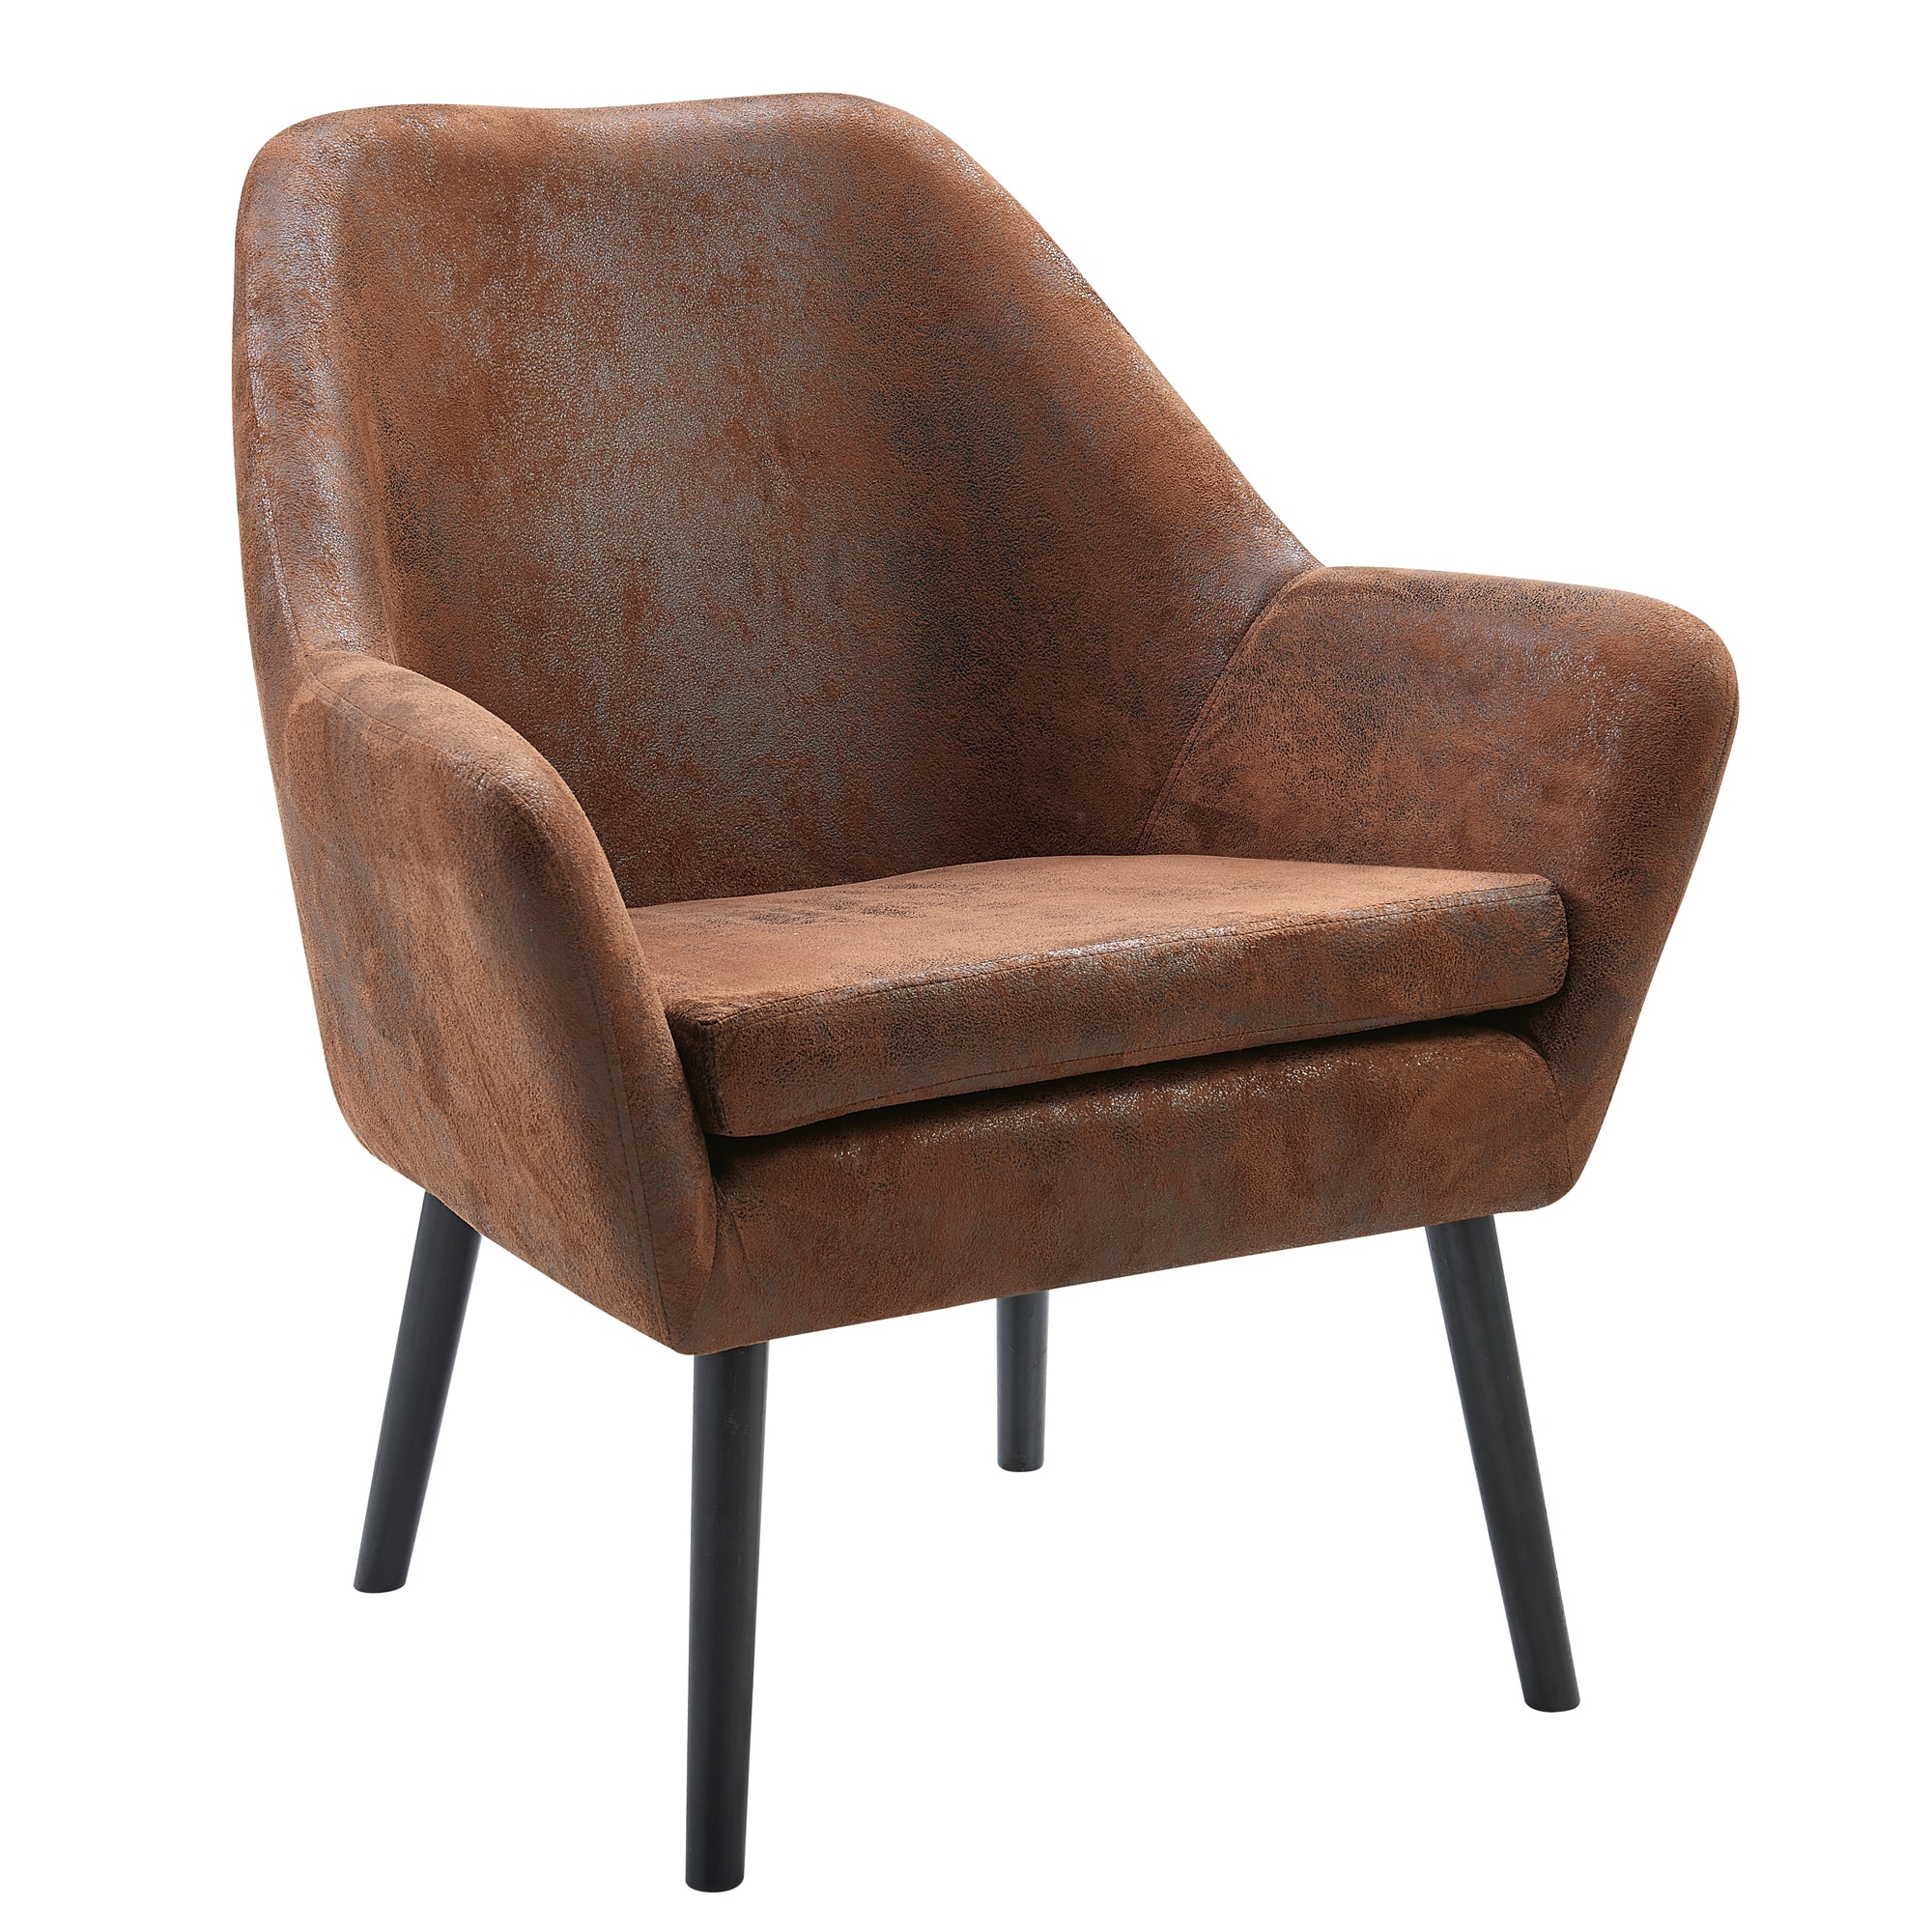 Versanora Divano Armchair Aged Fabric On Sale Overstock 16324817